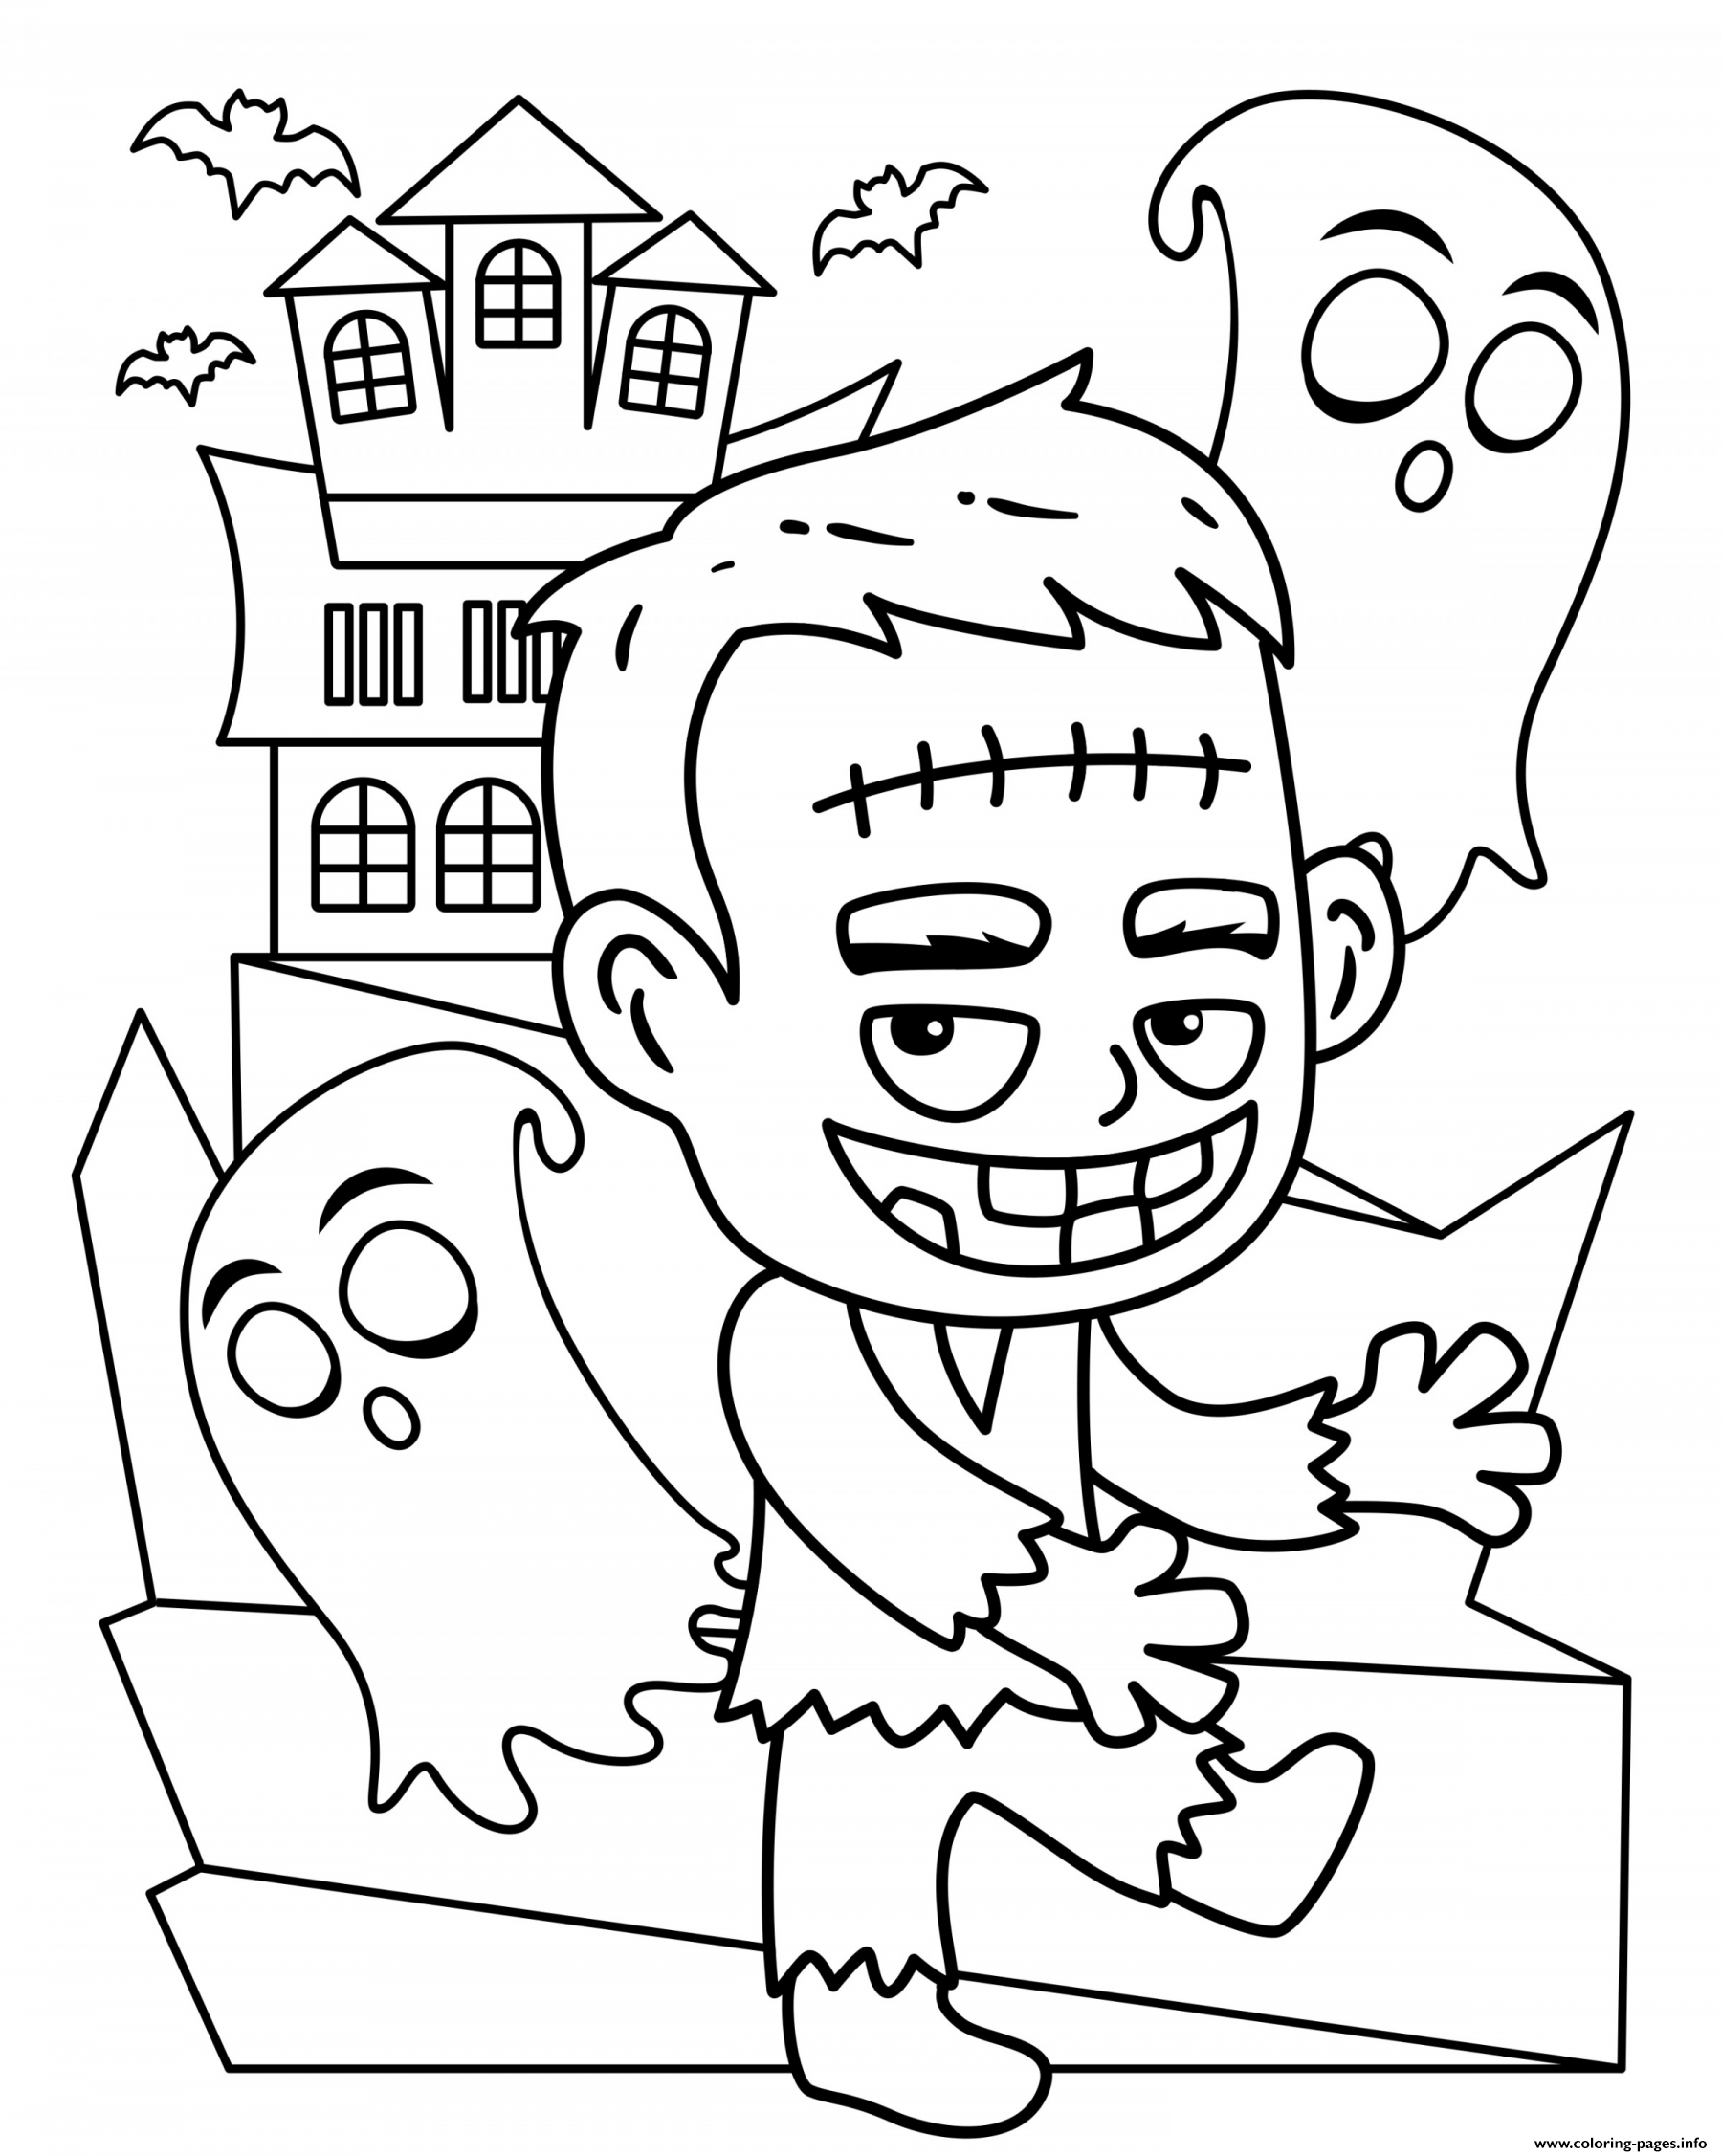 coloring halloween kids top 10 halloween coloring pages for kids to consider this halloween kids coloring